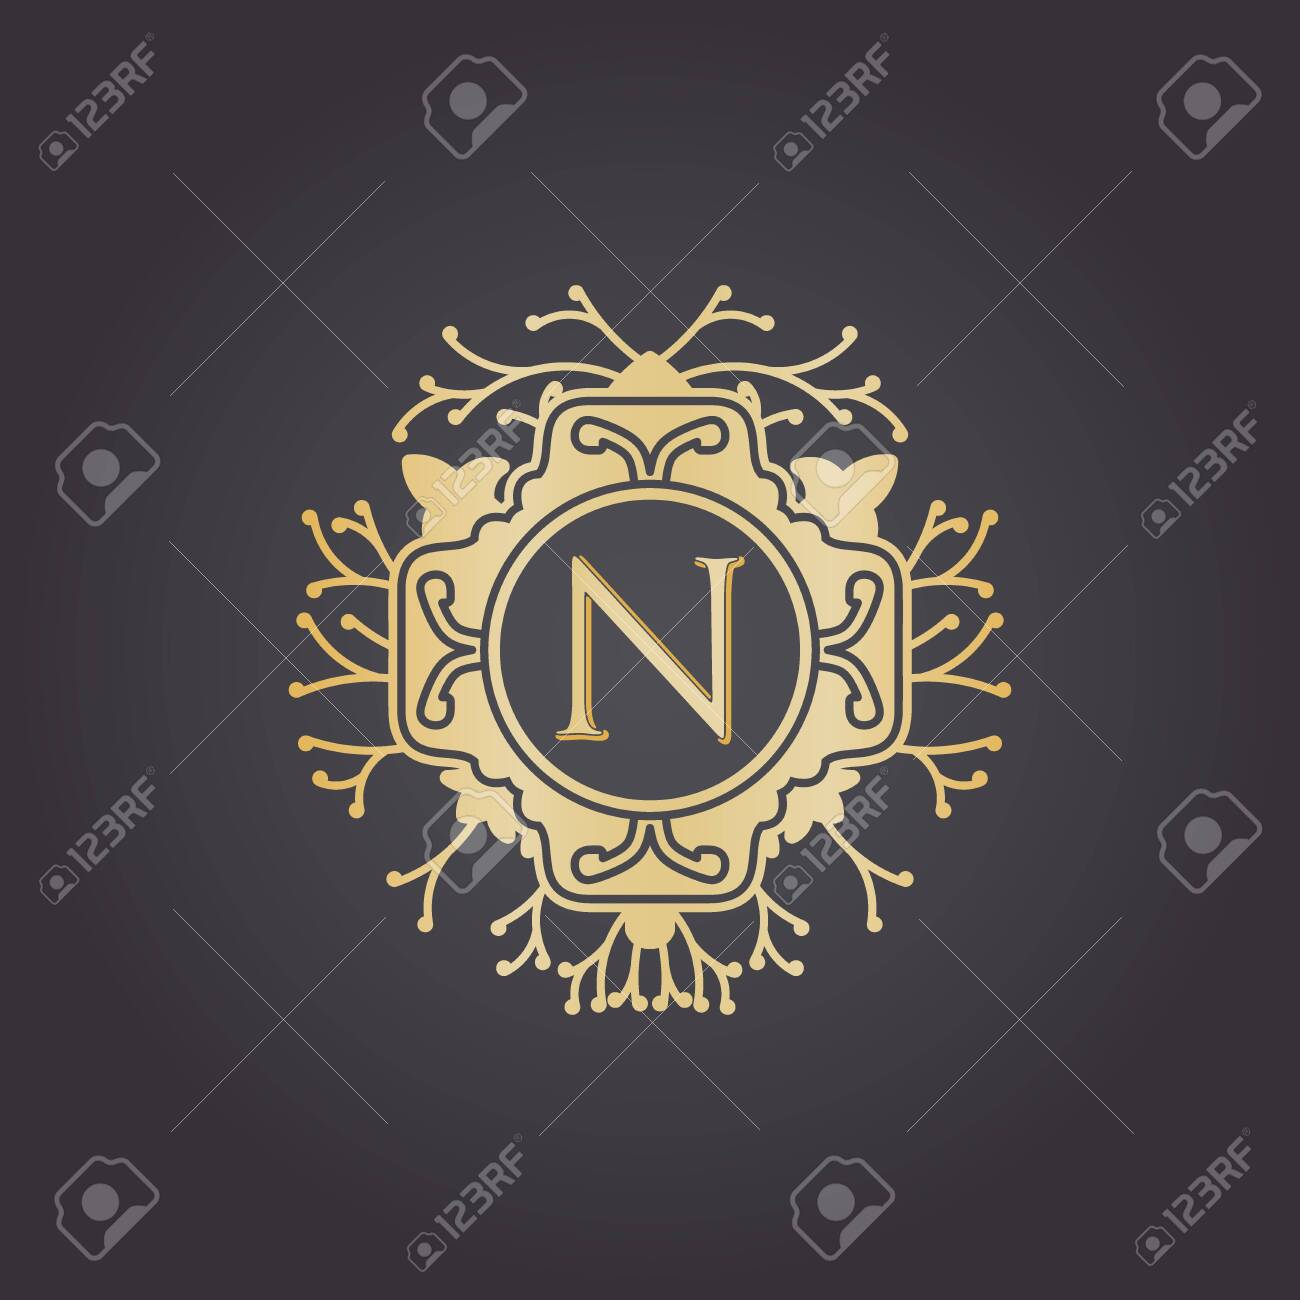 Initial Letter n, Luxury Logo for boutique, cosmetic, or jewelery logo design. Vector Illustration - 144490115